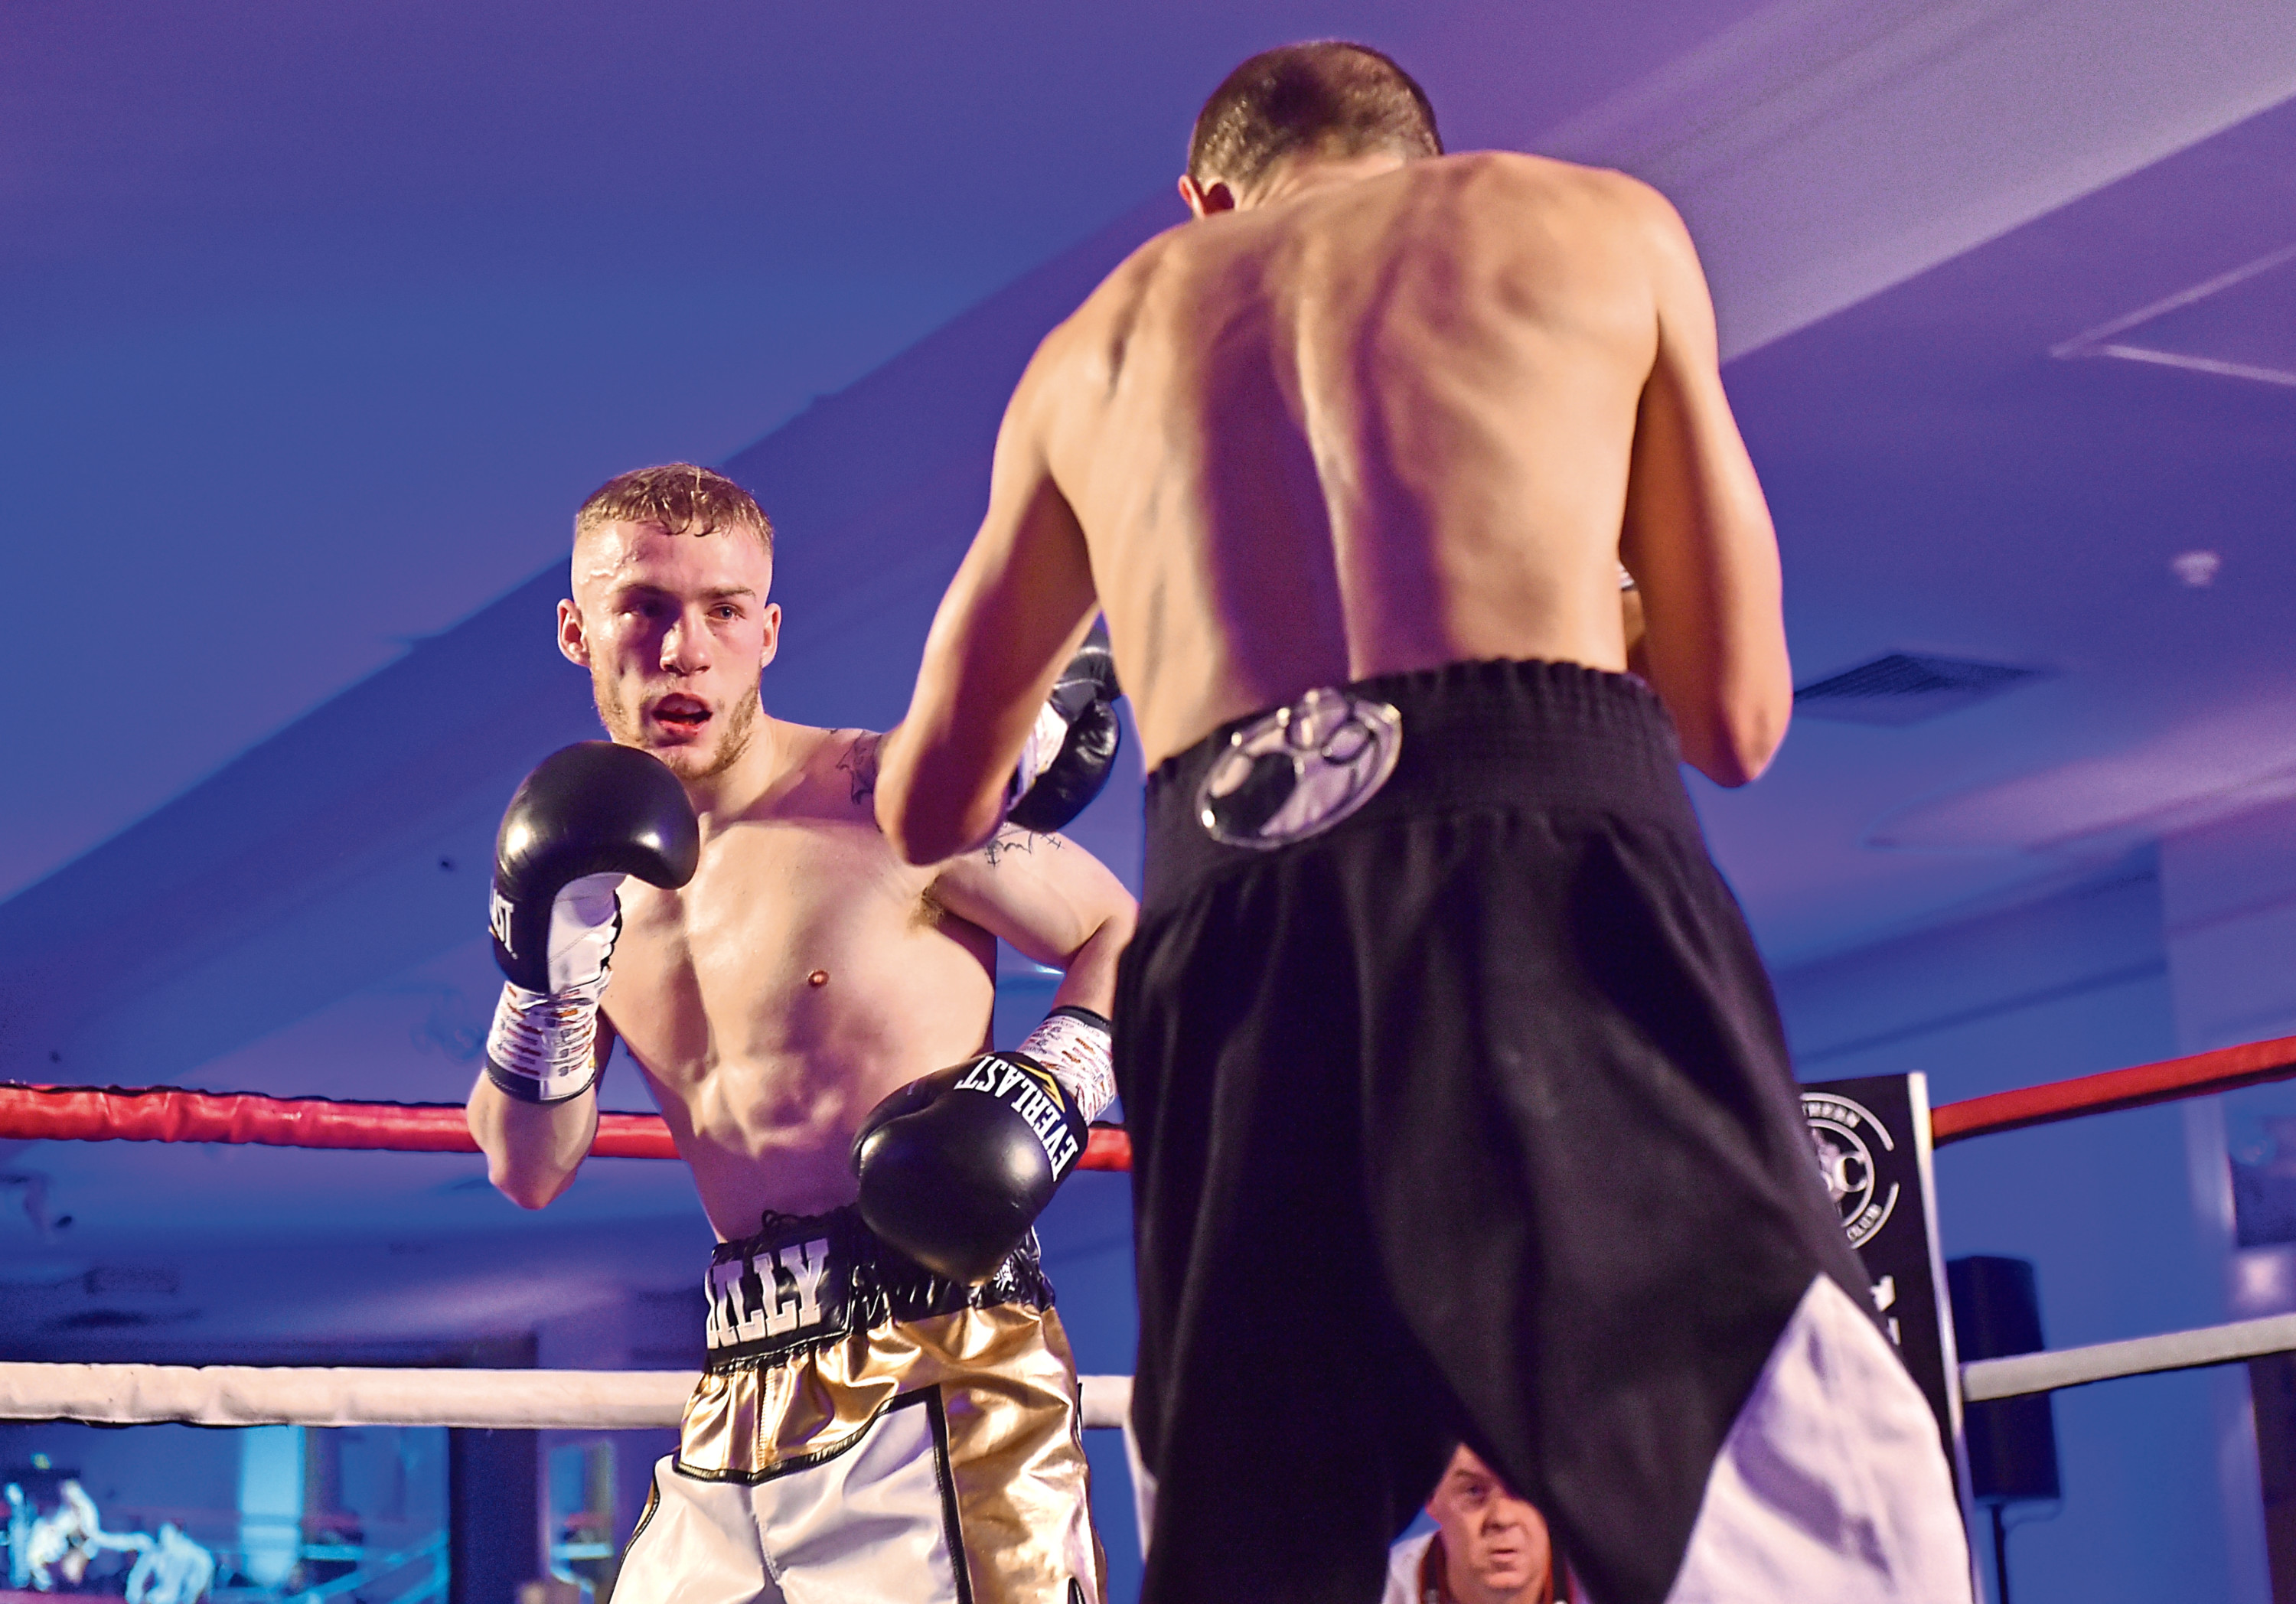 Pictured is Billy Stuart (Gold Shorts) v Dmytro Kostenko. Picture by Scott Baxter